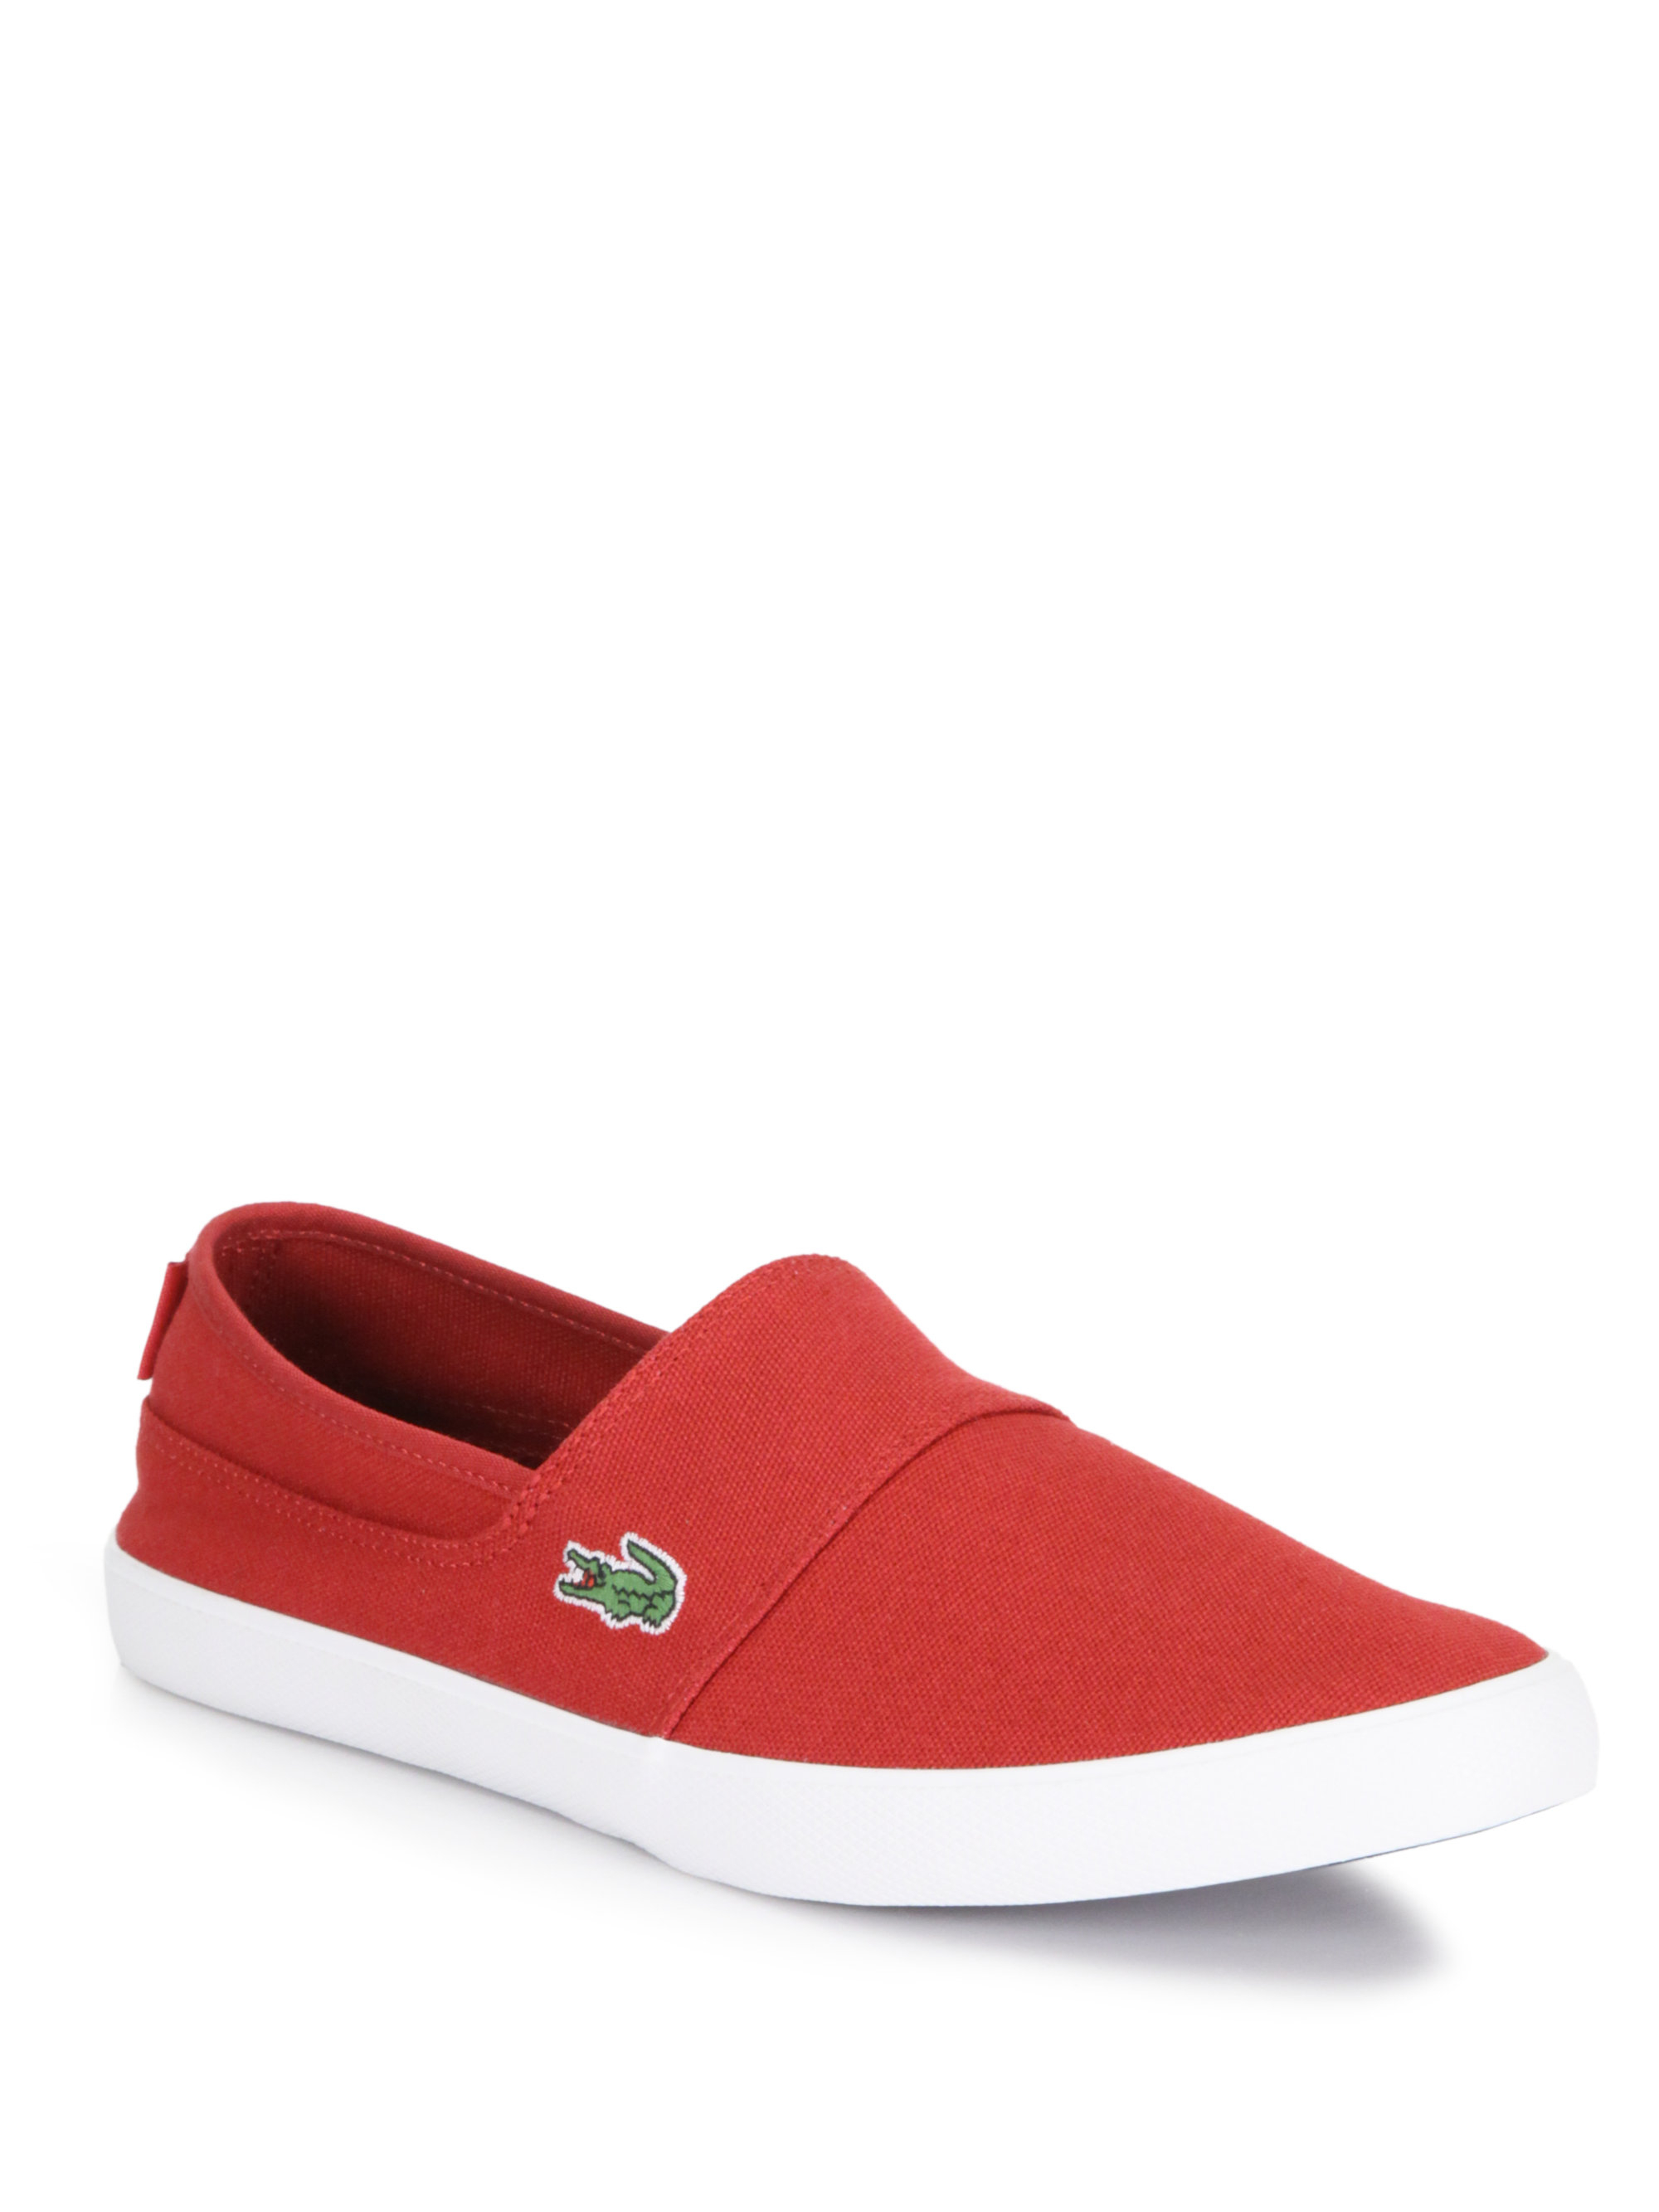 lacoste maurice slipon sneakers in red for men lyst